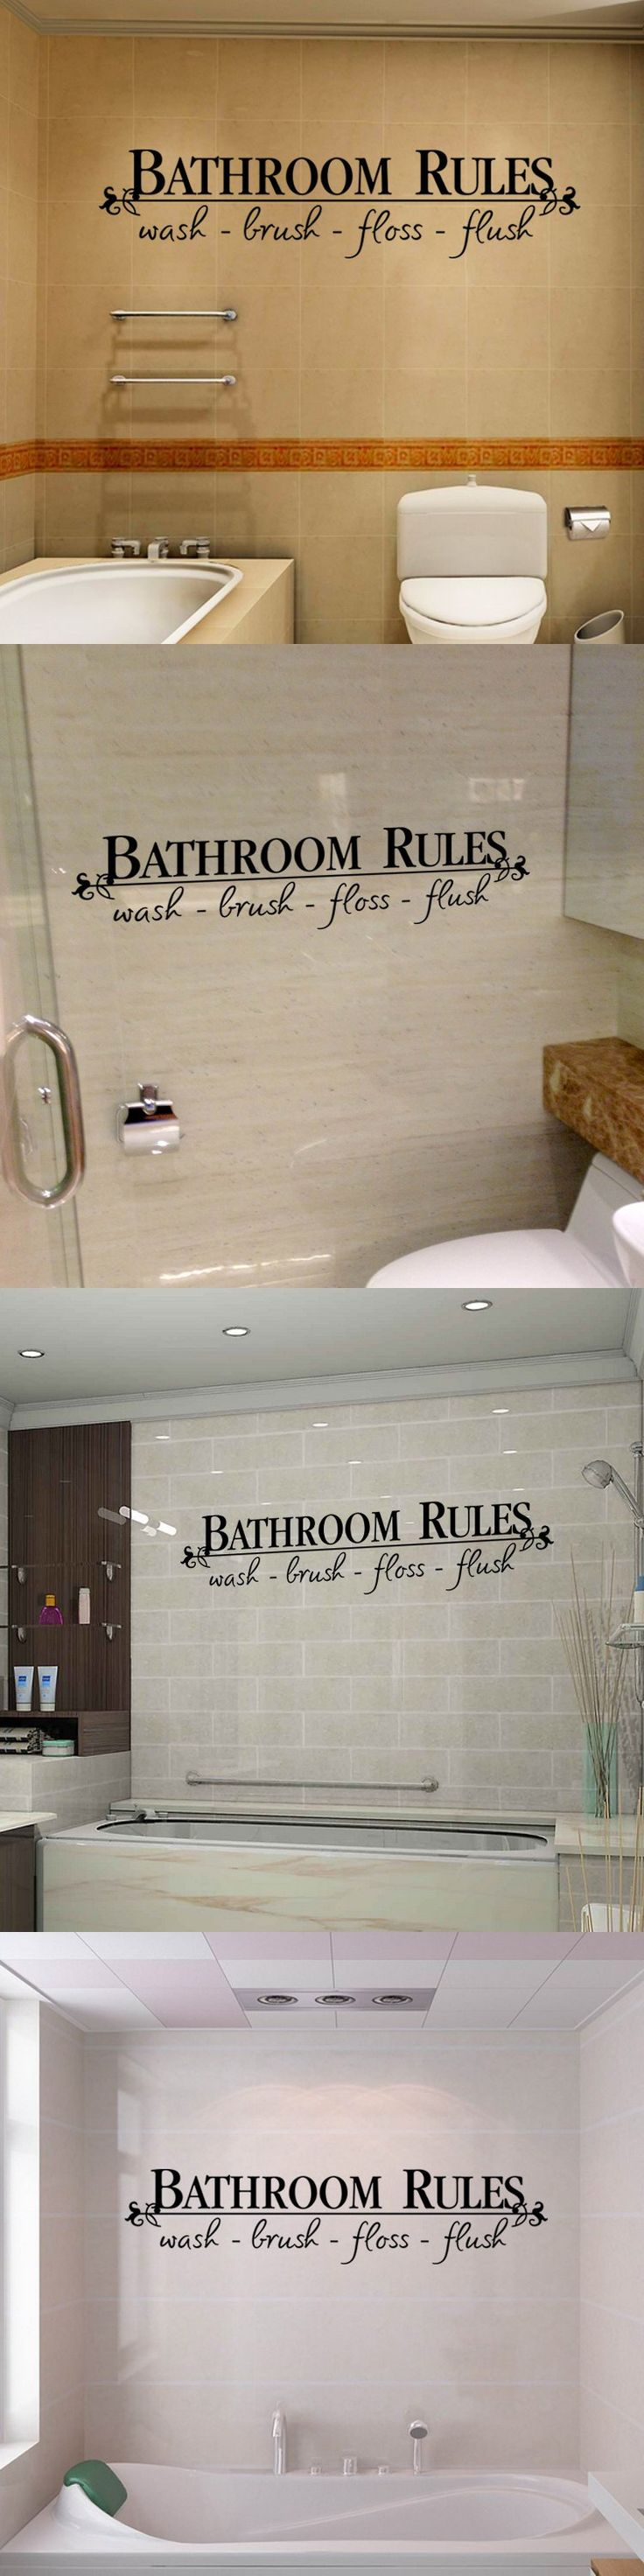 Bathroom wall decor quotes - Creative Bathroom Wall Stickers Waterproof Removable Vinyl Wall Art Decal Stickers Home Decorative Bathroom English Quote Decals